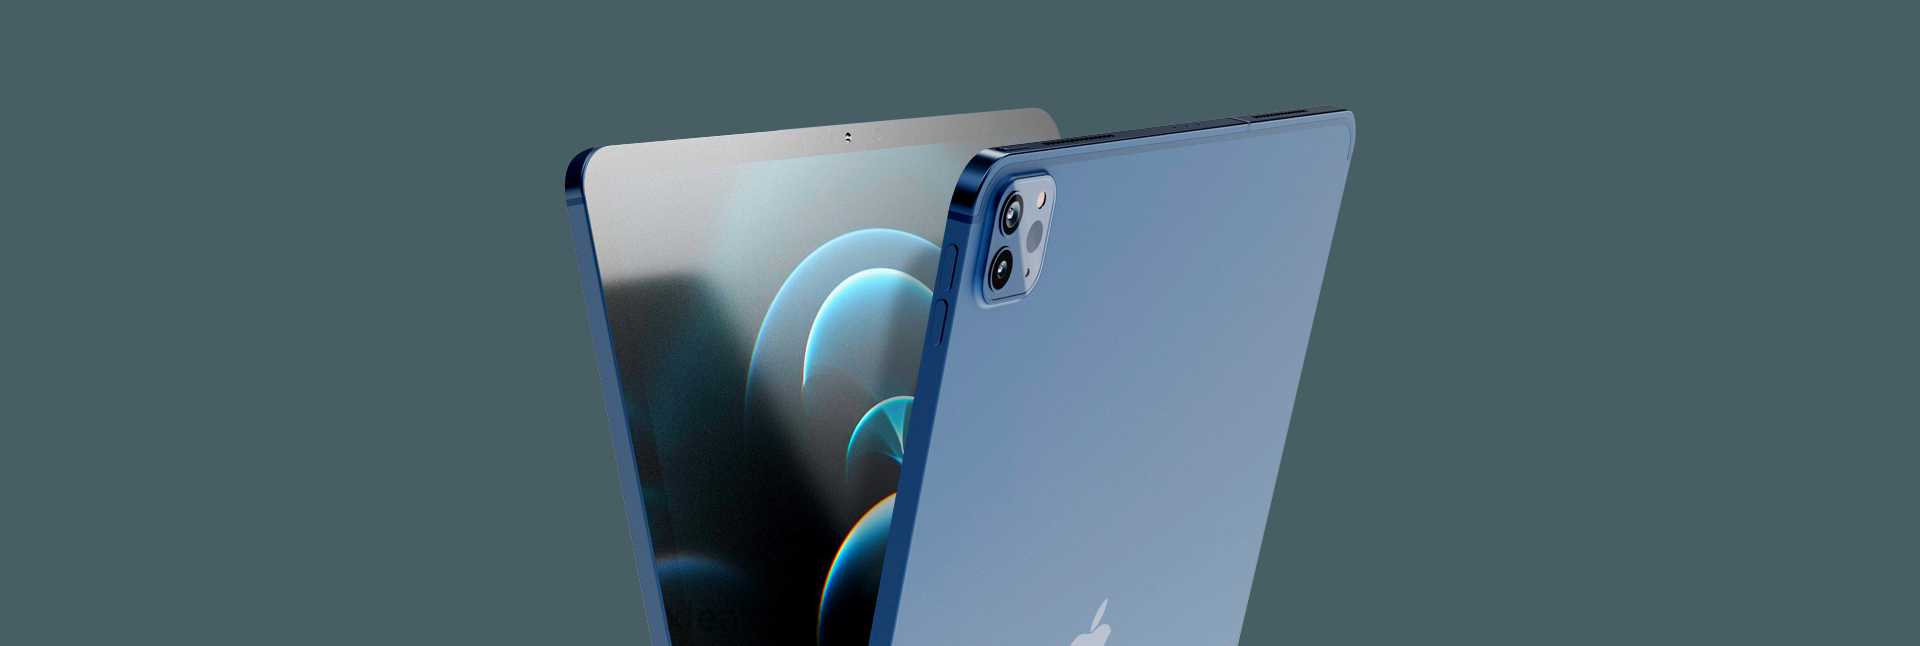 New iPad Pro 2021: Detailed specs, release date, prices